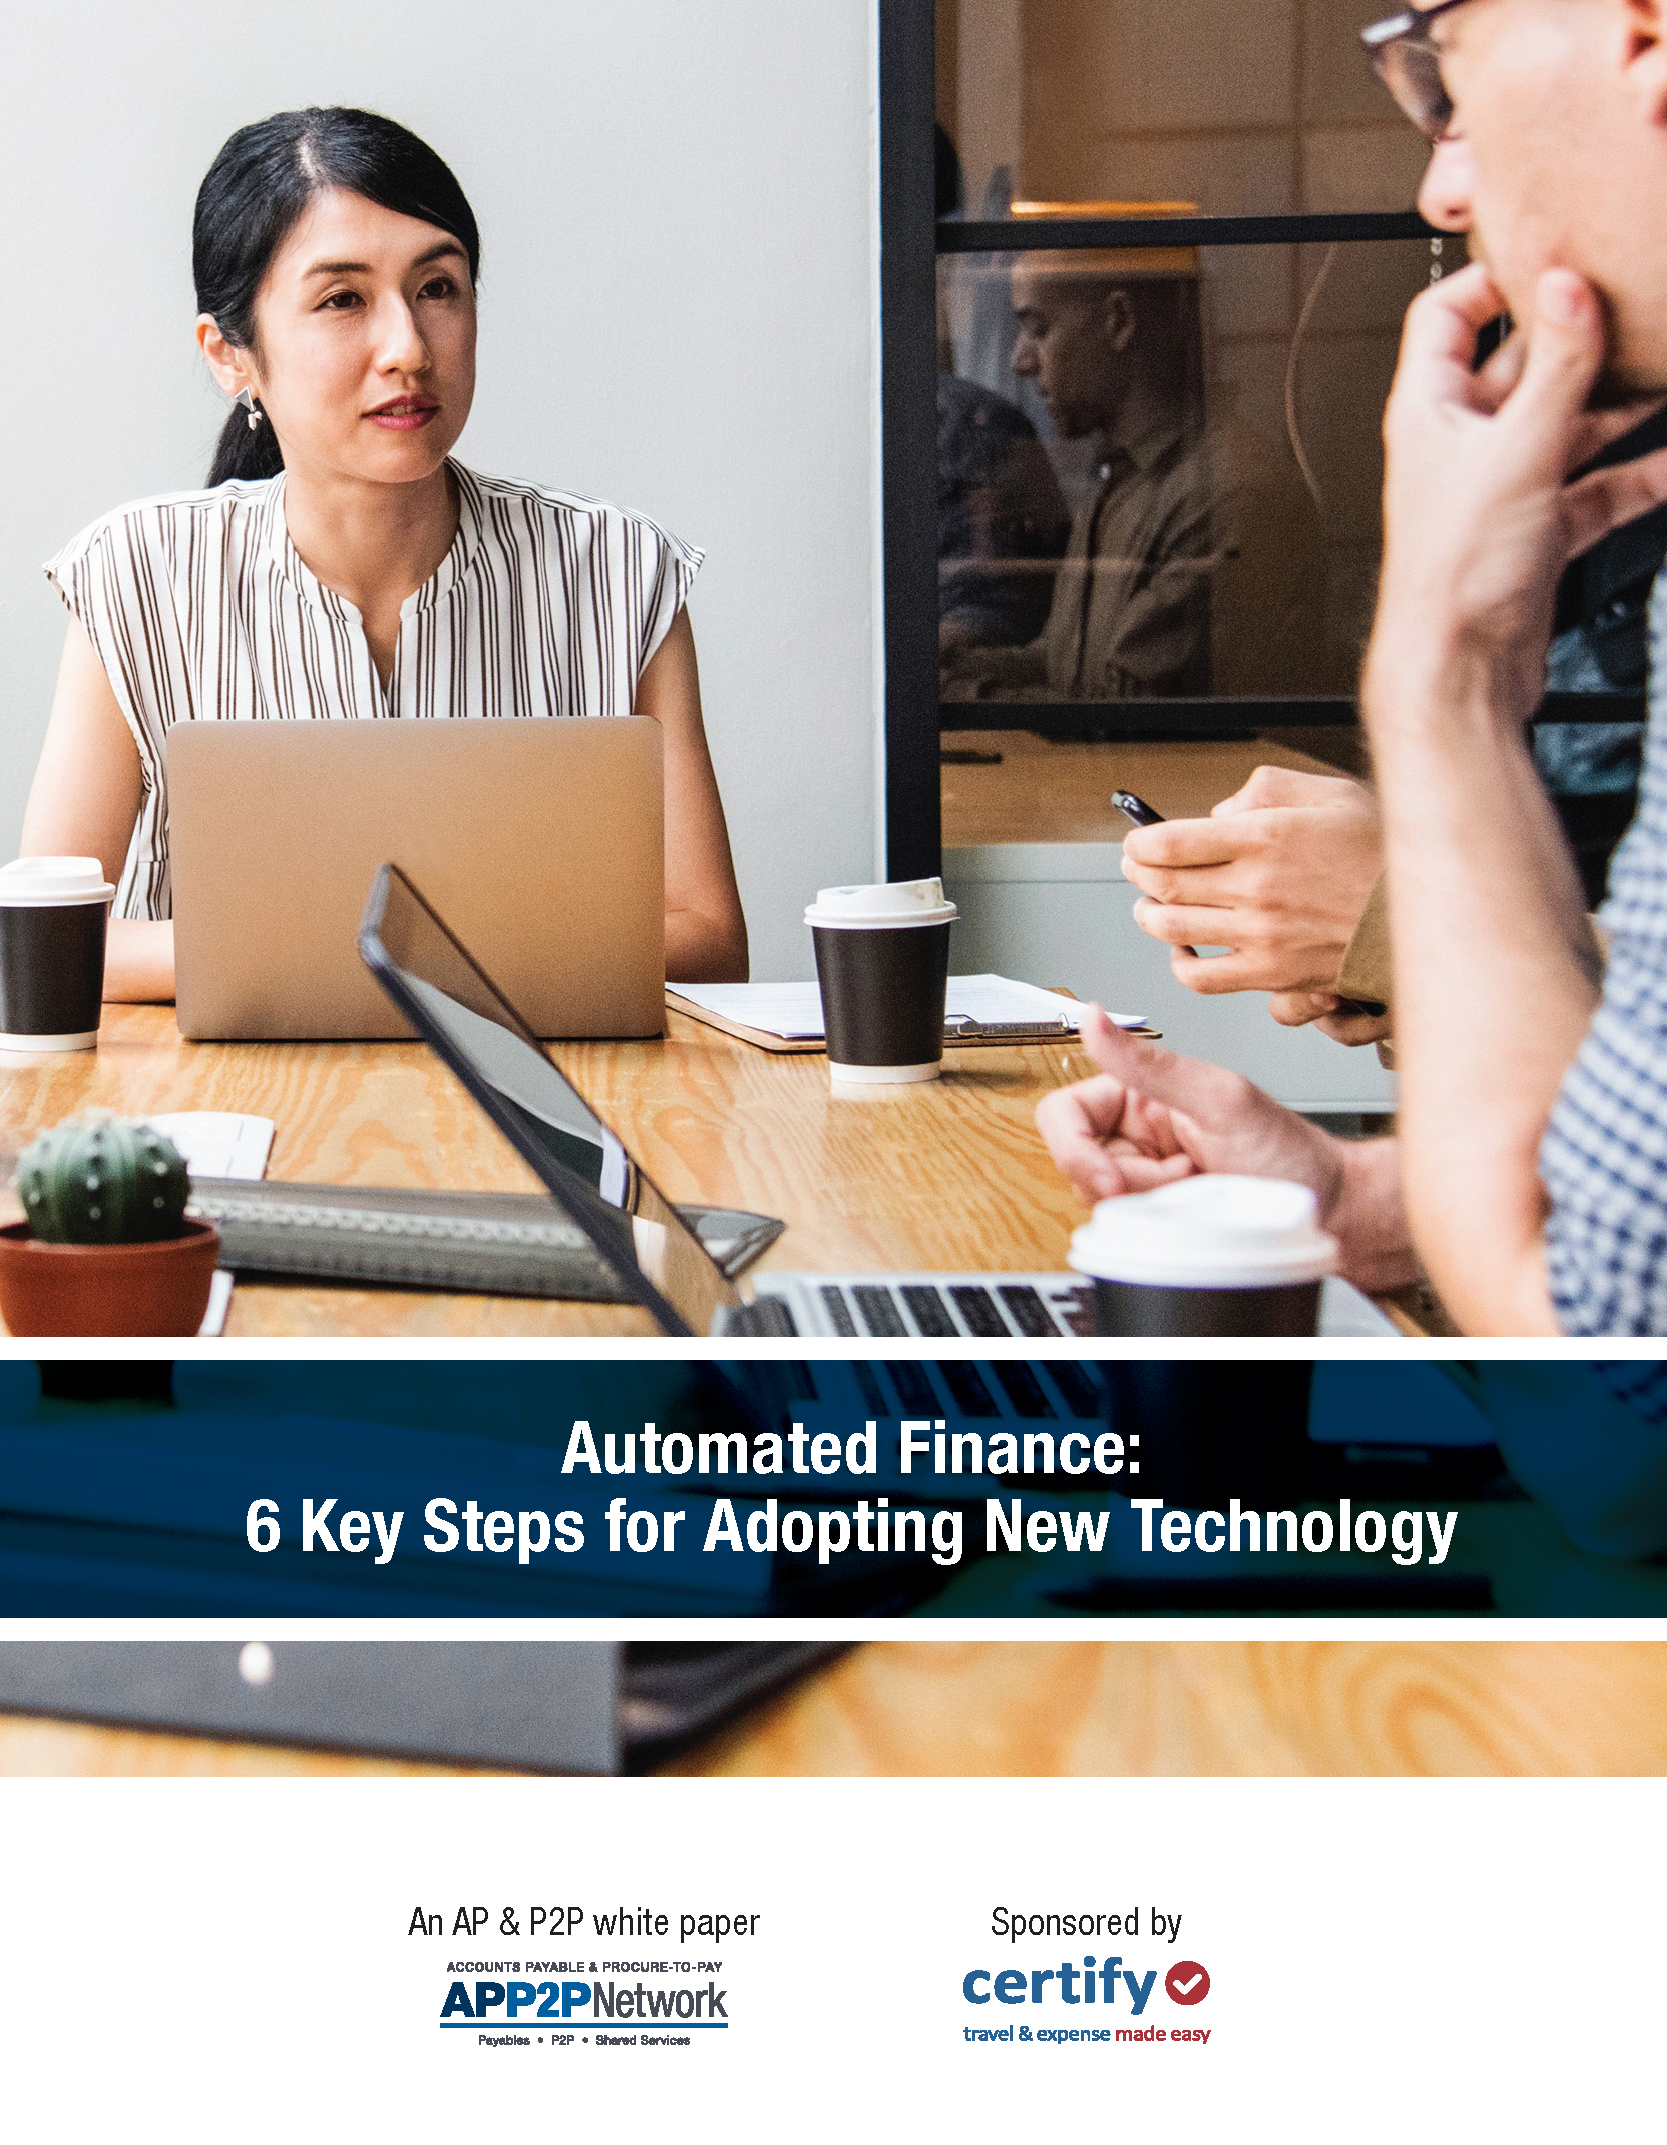 Automated Finance - 6 Key Steps for Adopting New Technology